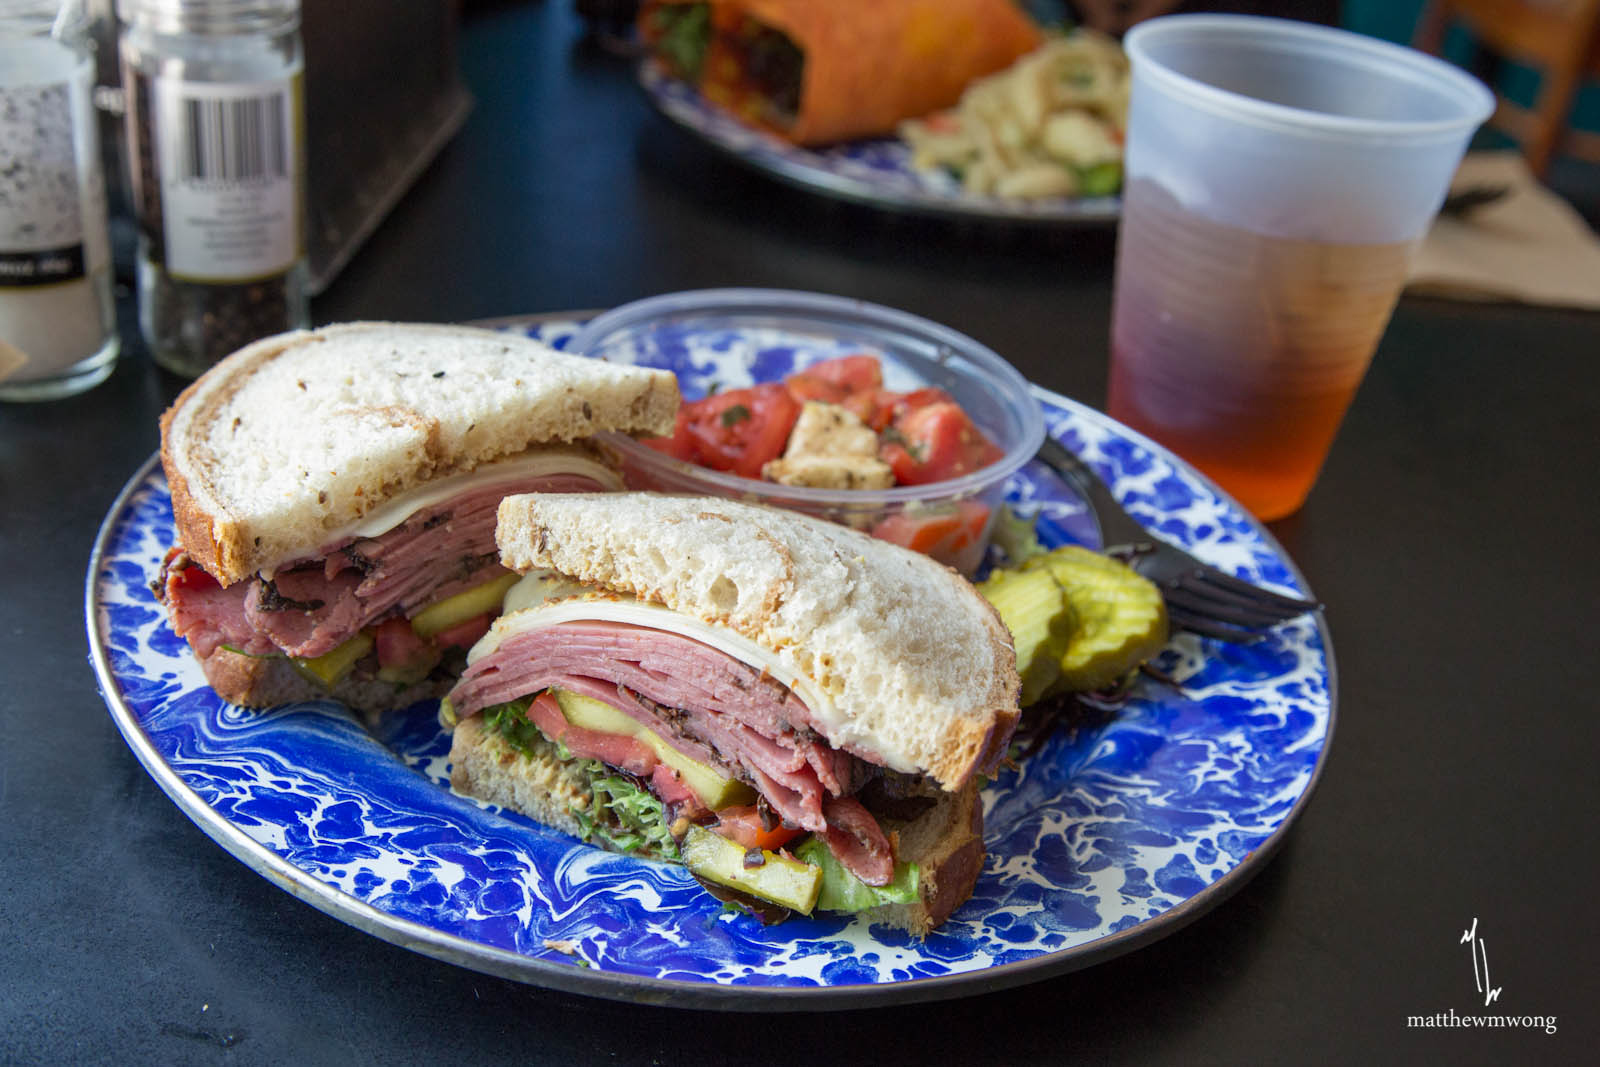 Cafe Sandwich, Mixed greens, tomatoes, and pesto mayo on focaccia with your choice of meat & cheese: roast beef & cheddar